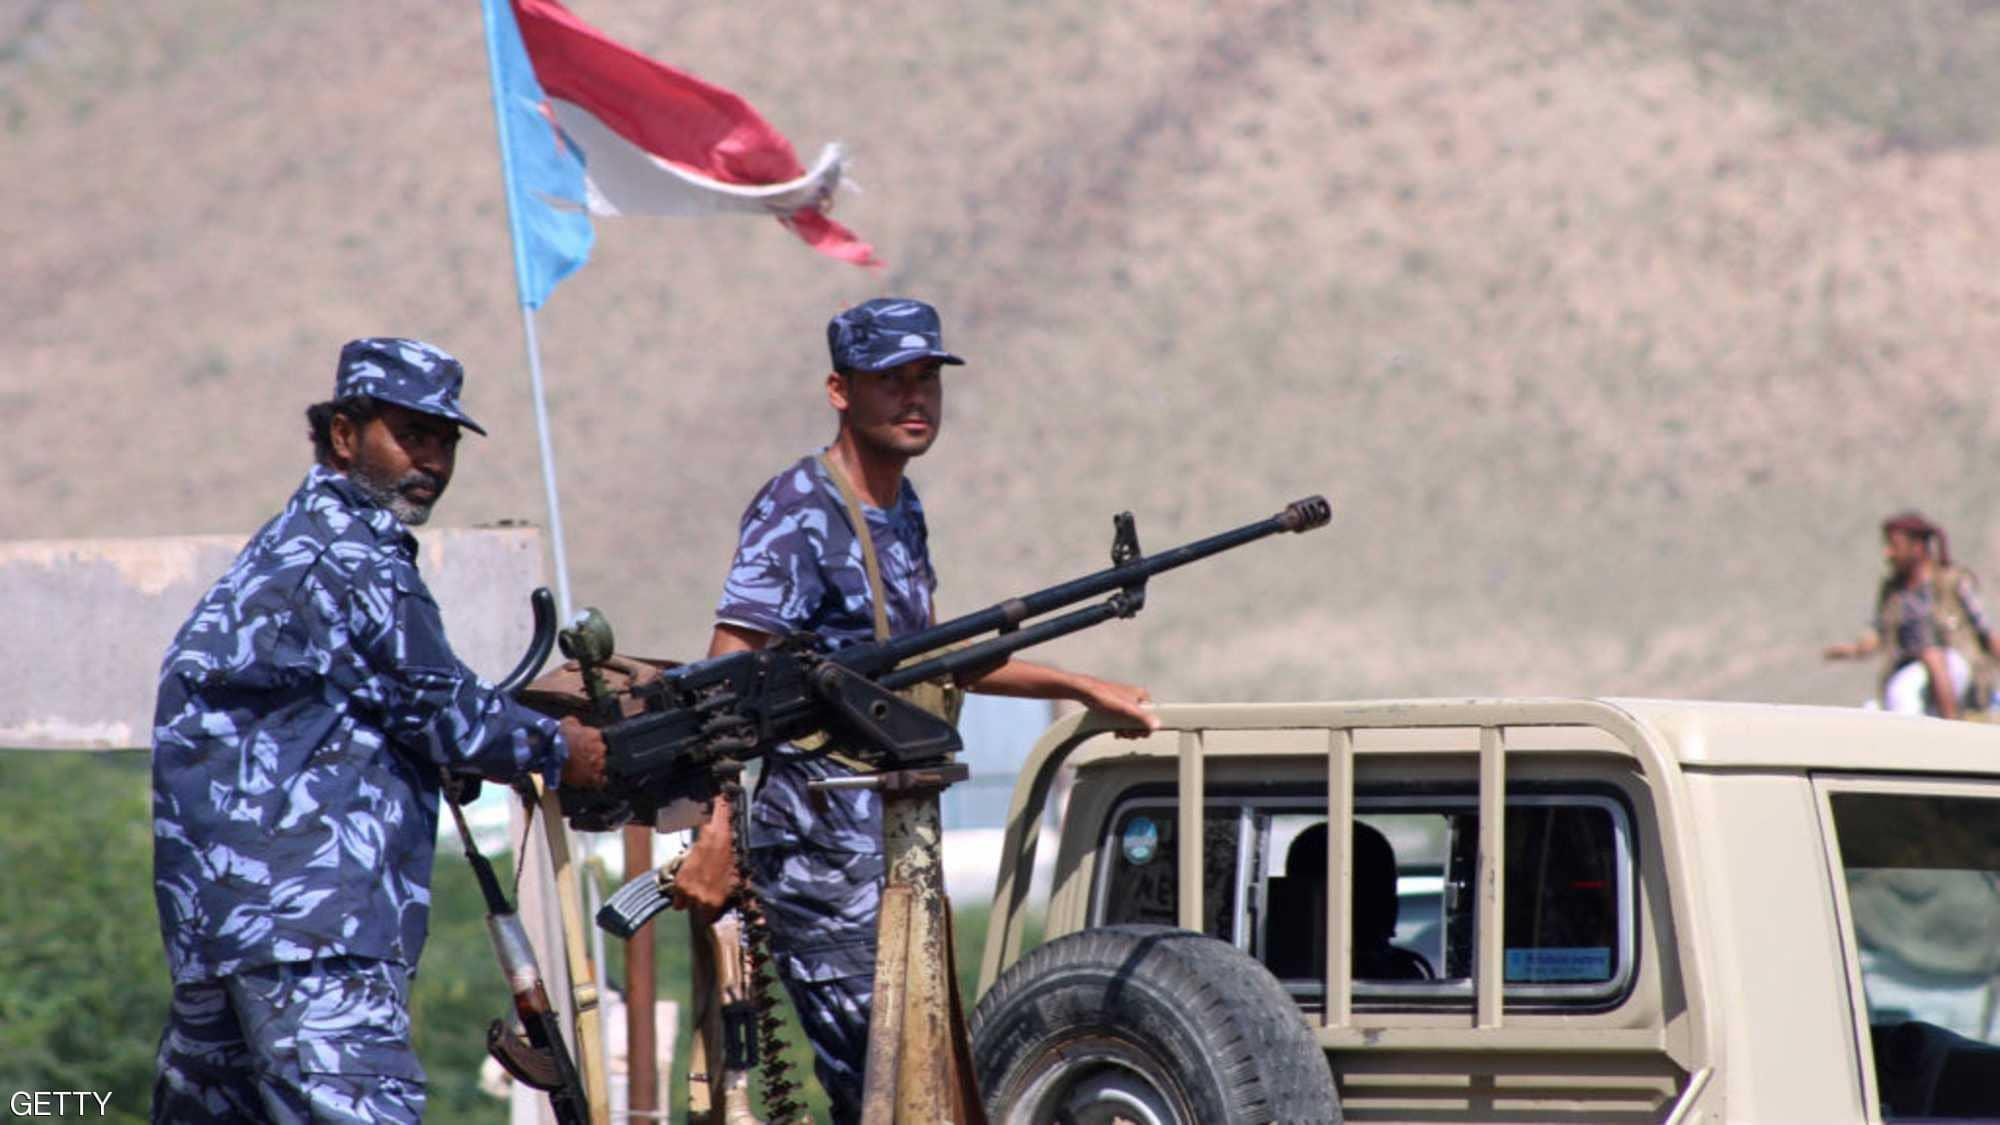 Government forces, separatists clash in Yemeni UNESCO site